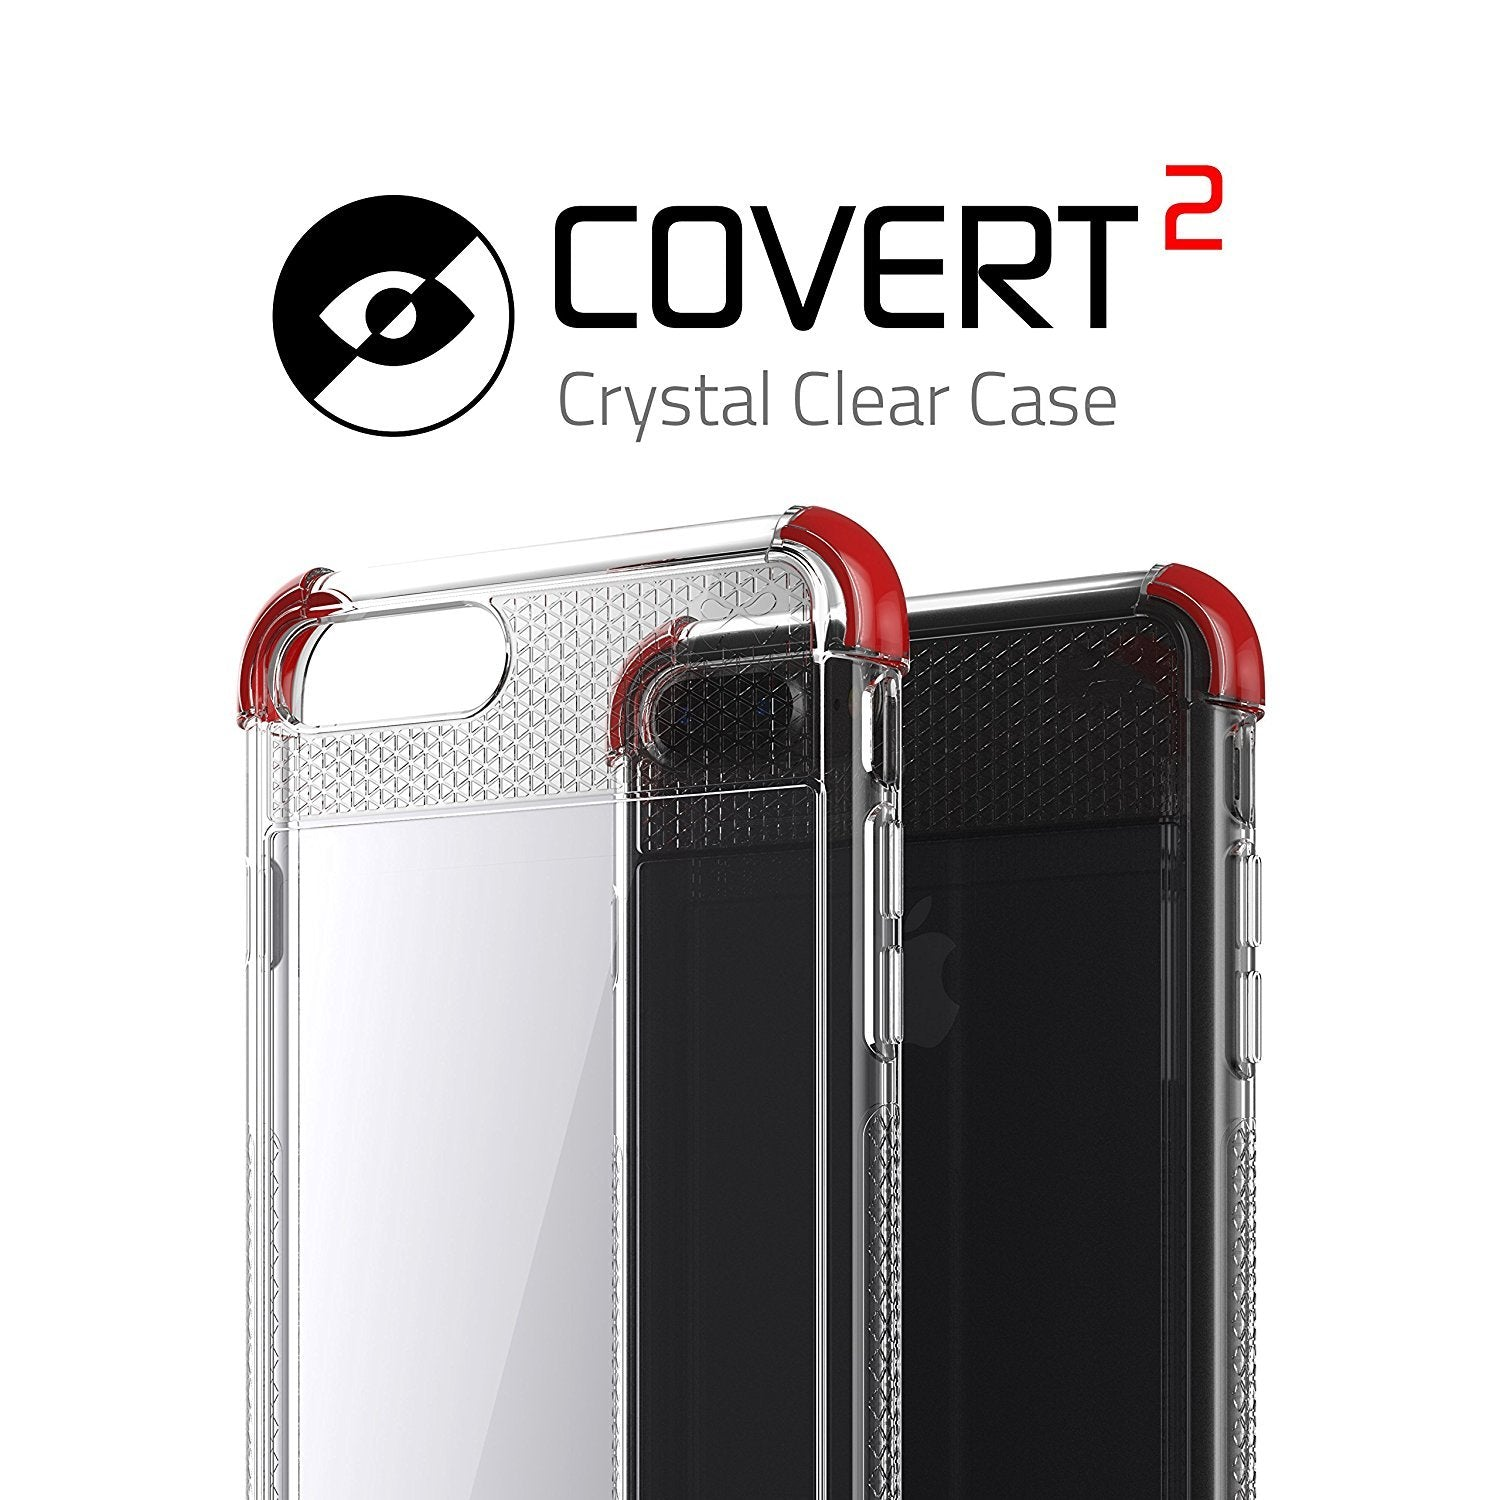 iPhone 8+ Plus Case, Ghostek Covert 2 Series for iPhone 8+ Plus Protective Case [ Red]